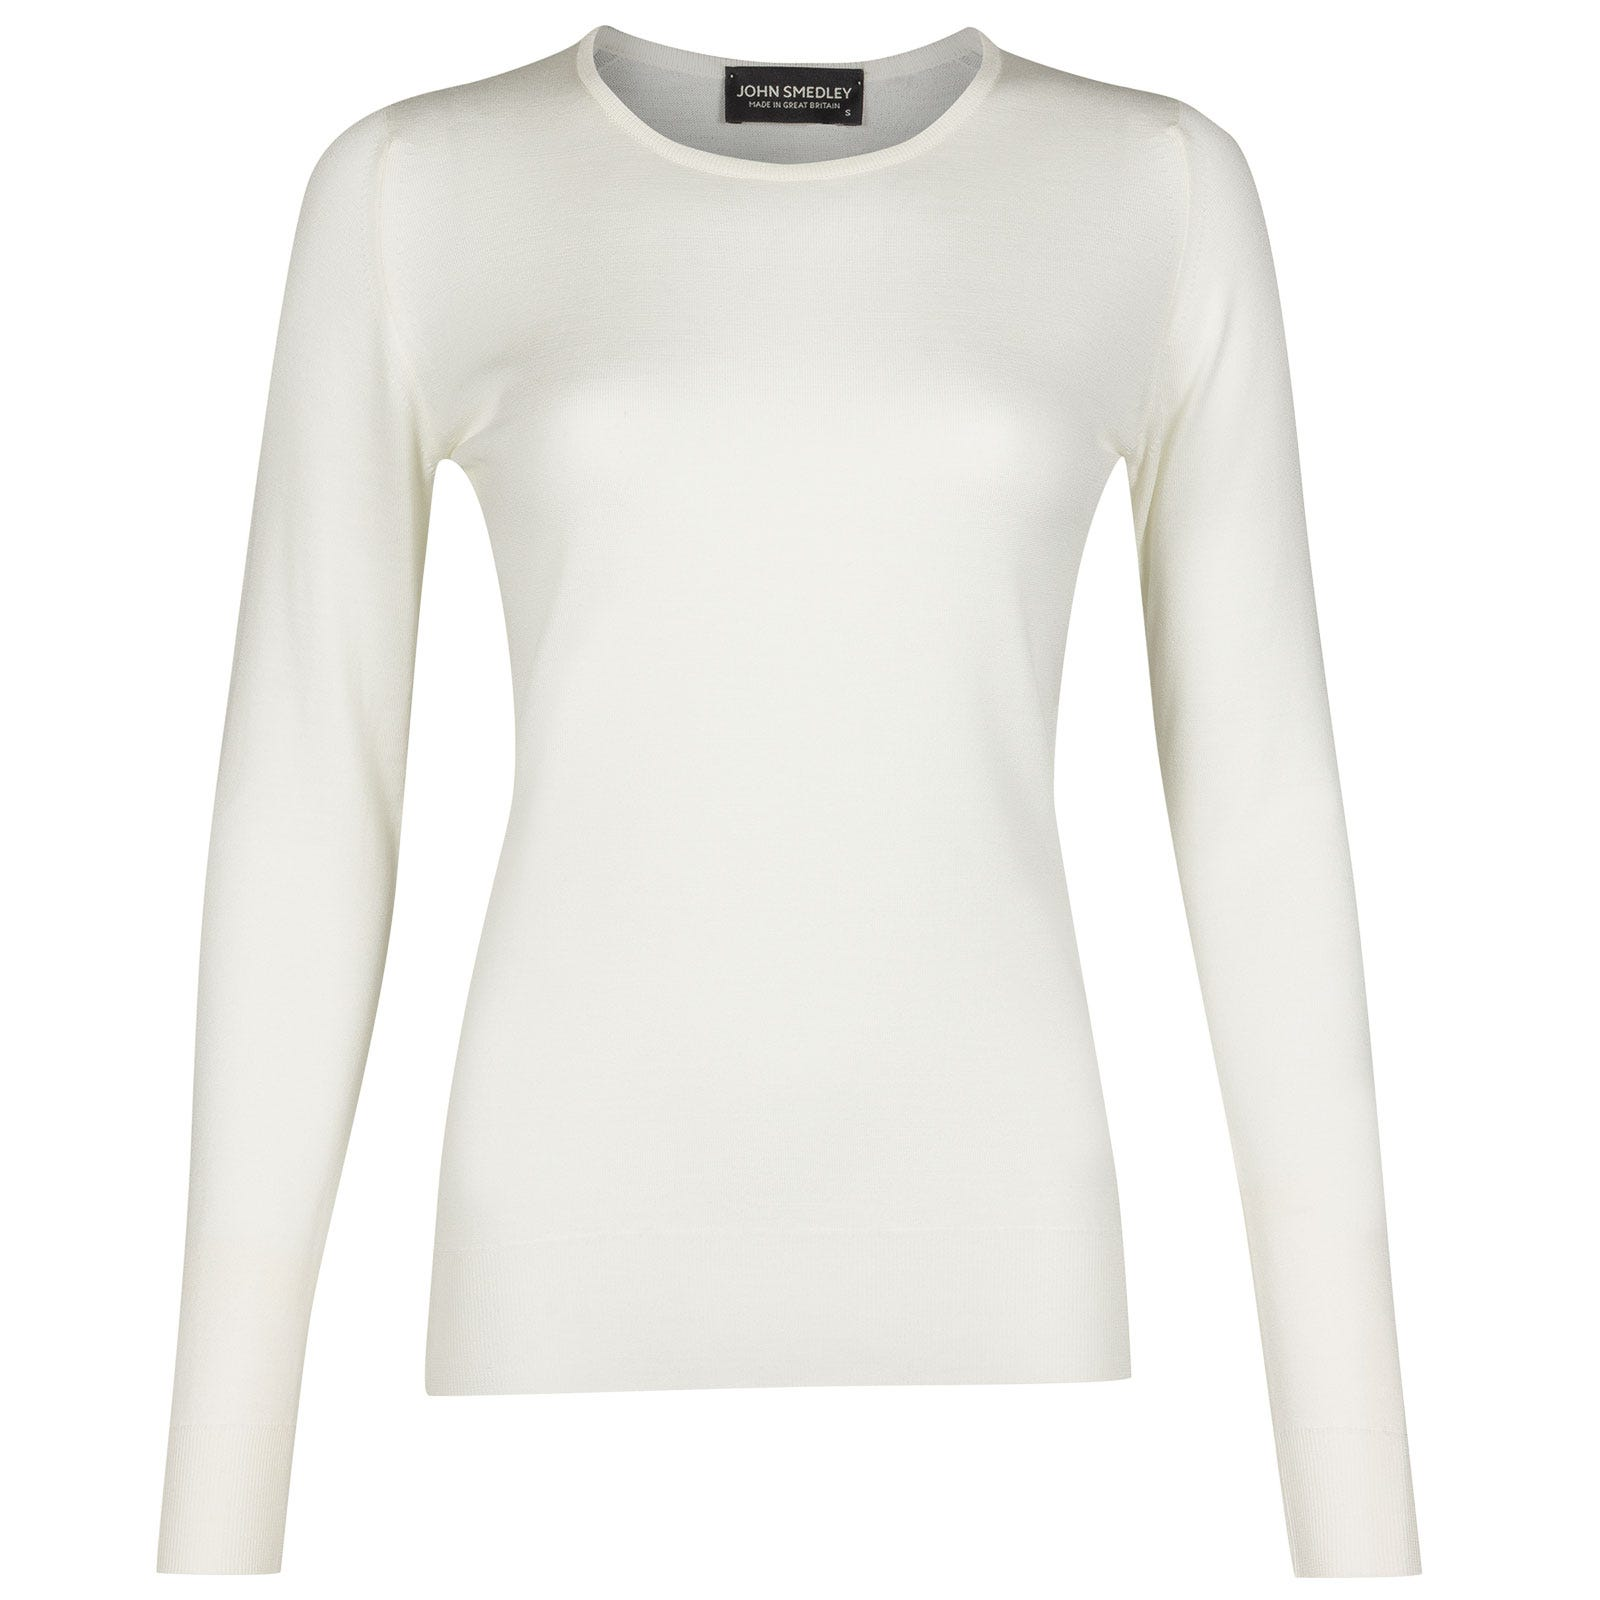 John Smedley Geranium Merino Wool Sweater in Snow White-L